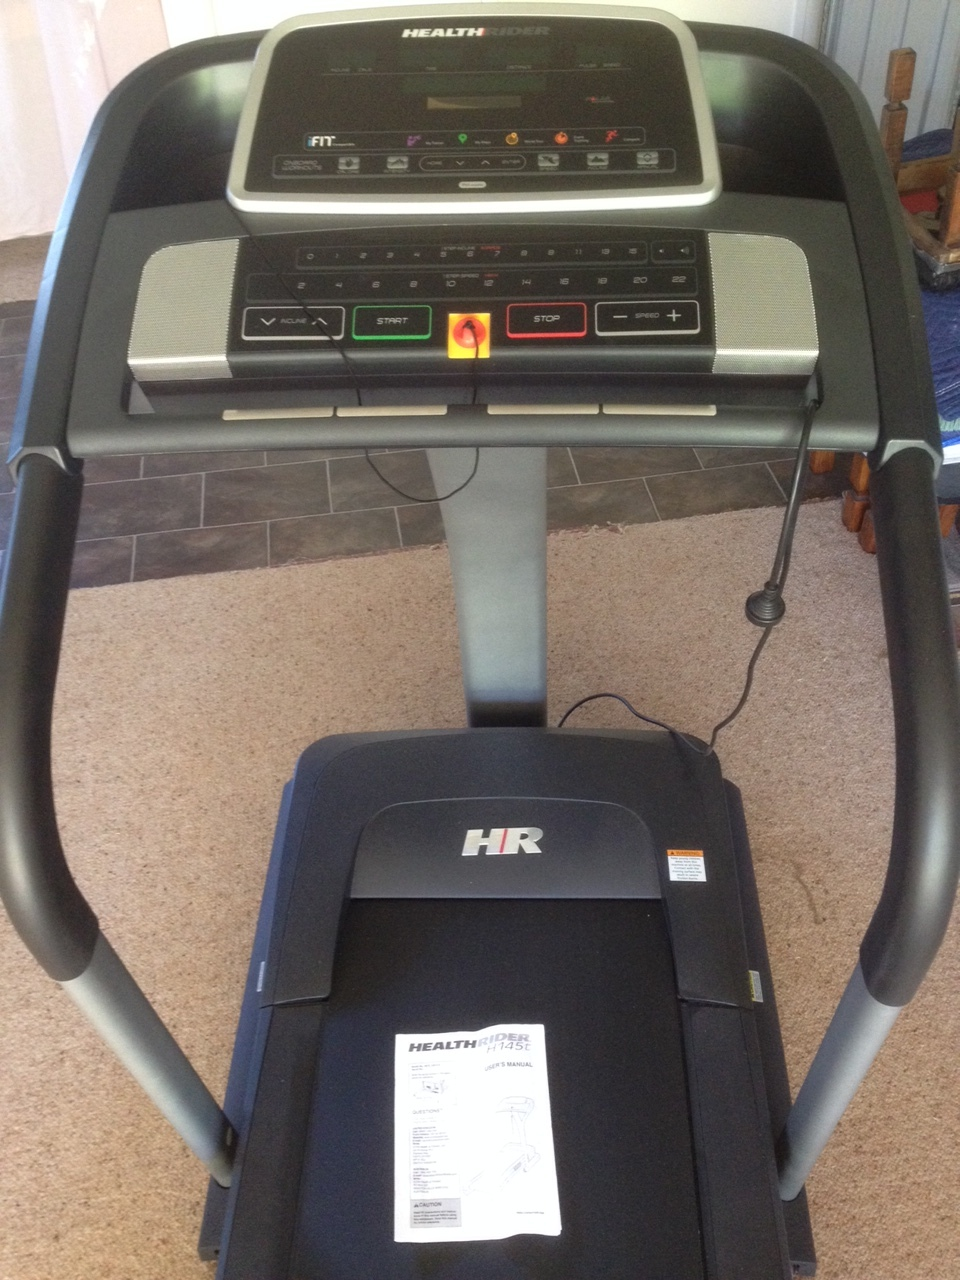 Healthrider H145T  Good quality treadmill.  As new condition, hardly used.  Purchased for $1400.   28 Pre-set Workout Programs - 7 high intensity workouts, 7 speed workouts, 7 incline workouts and 7 calorie based workouts provide plenty of variety for your workouts